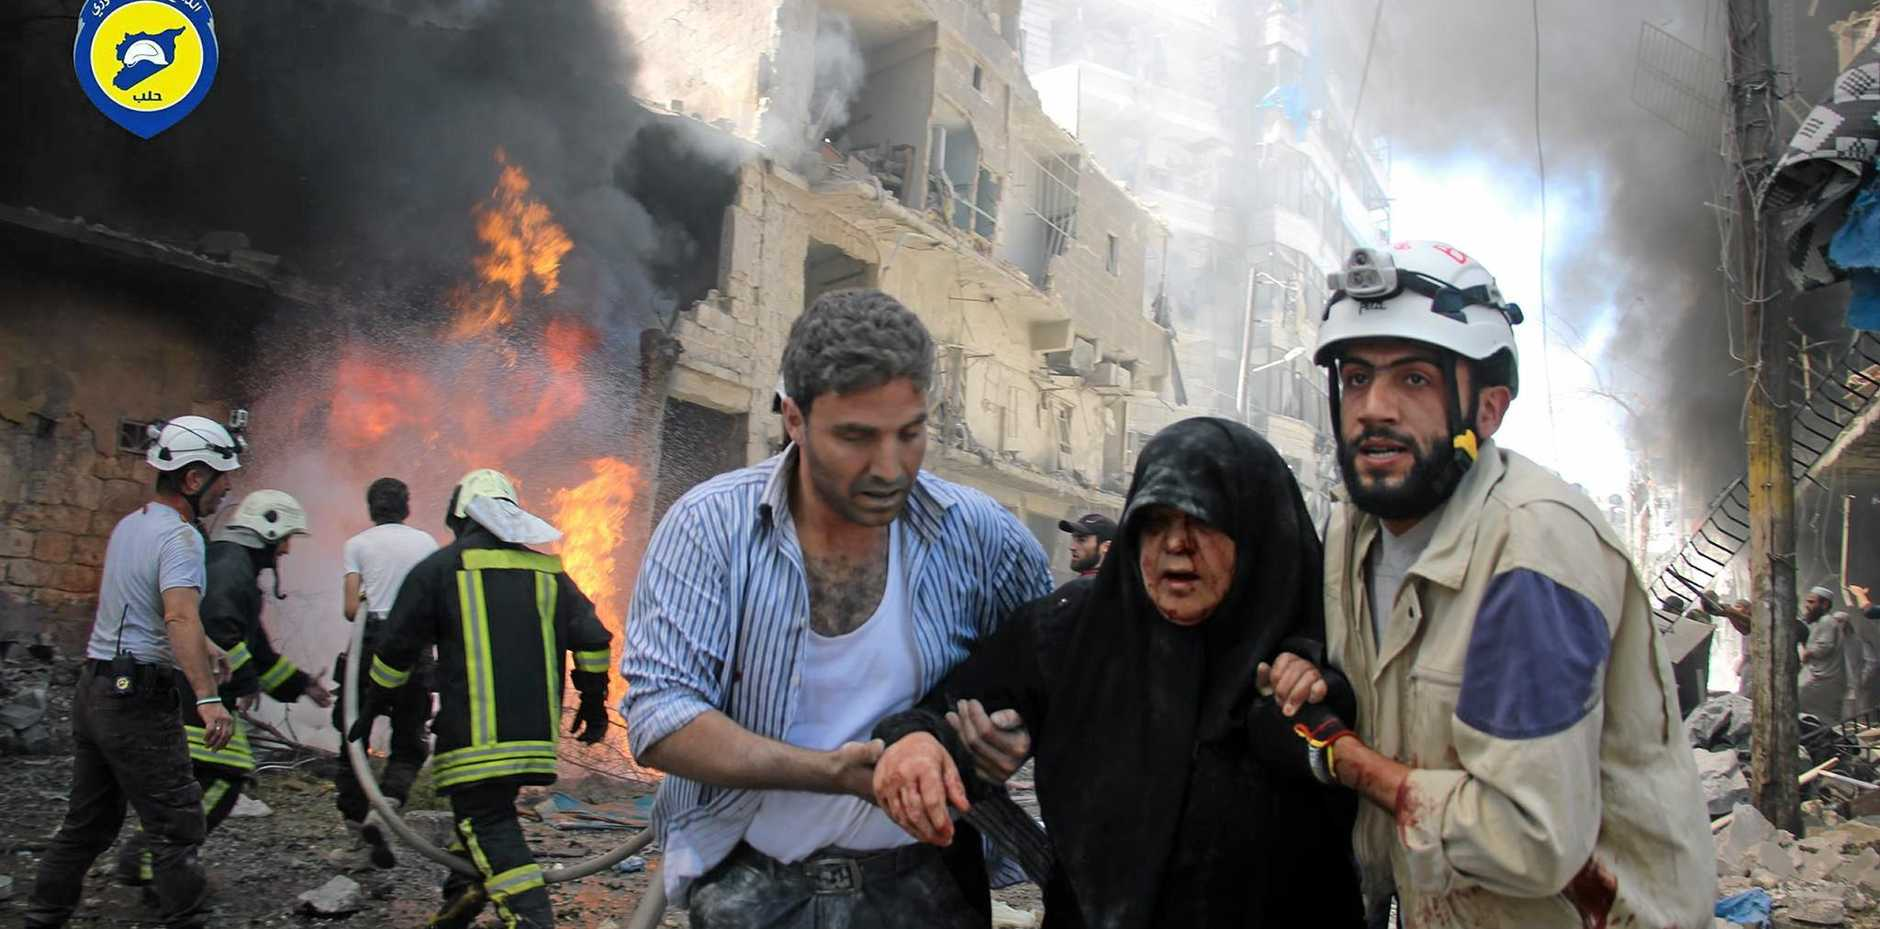 STOP THE BOMBING: An Injured woman is helped after warplanes attacked a street in Aleppo, Syria. One of the last doctors in the city says the bombing has destroyed medical services, putting thousands of lives at risk.